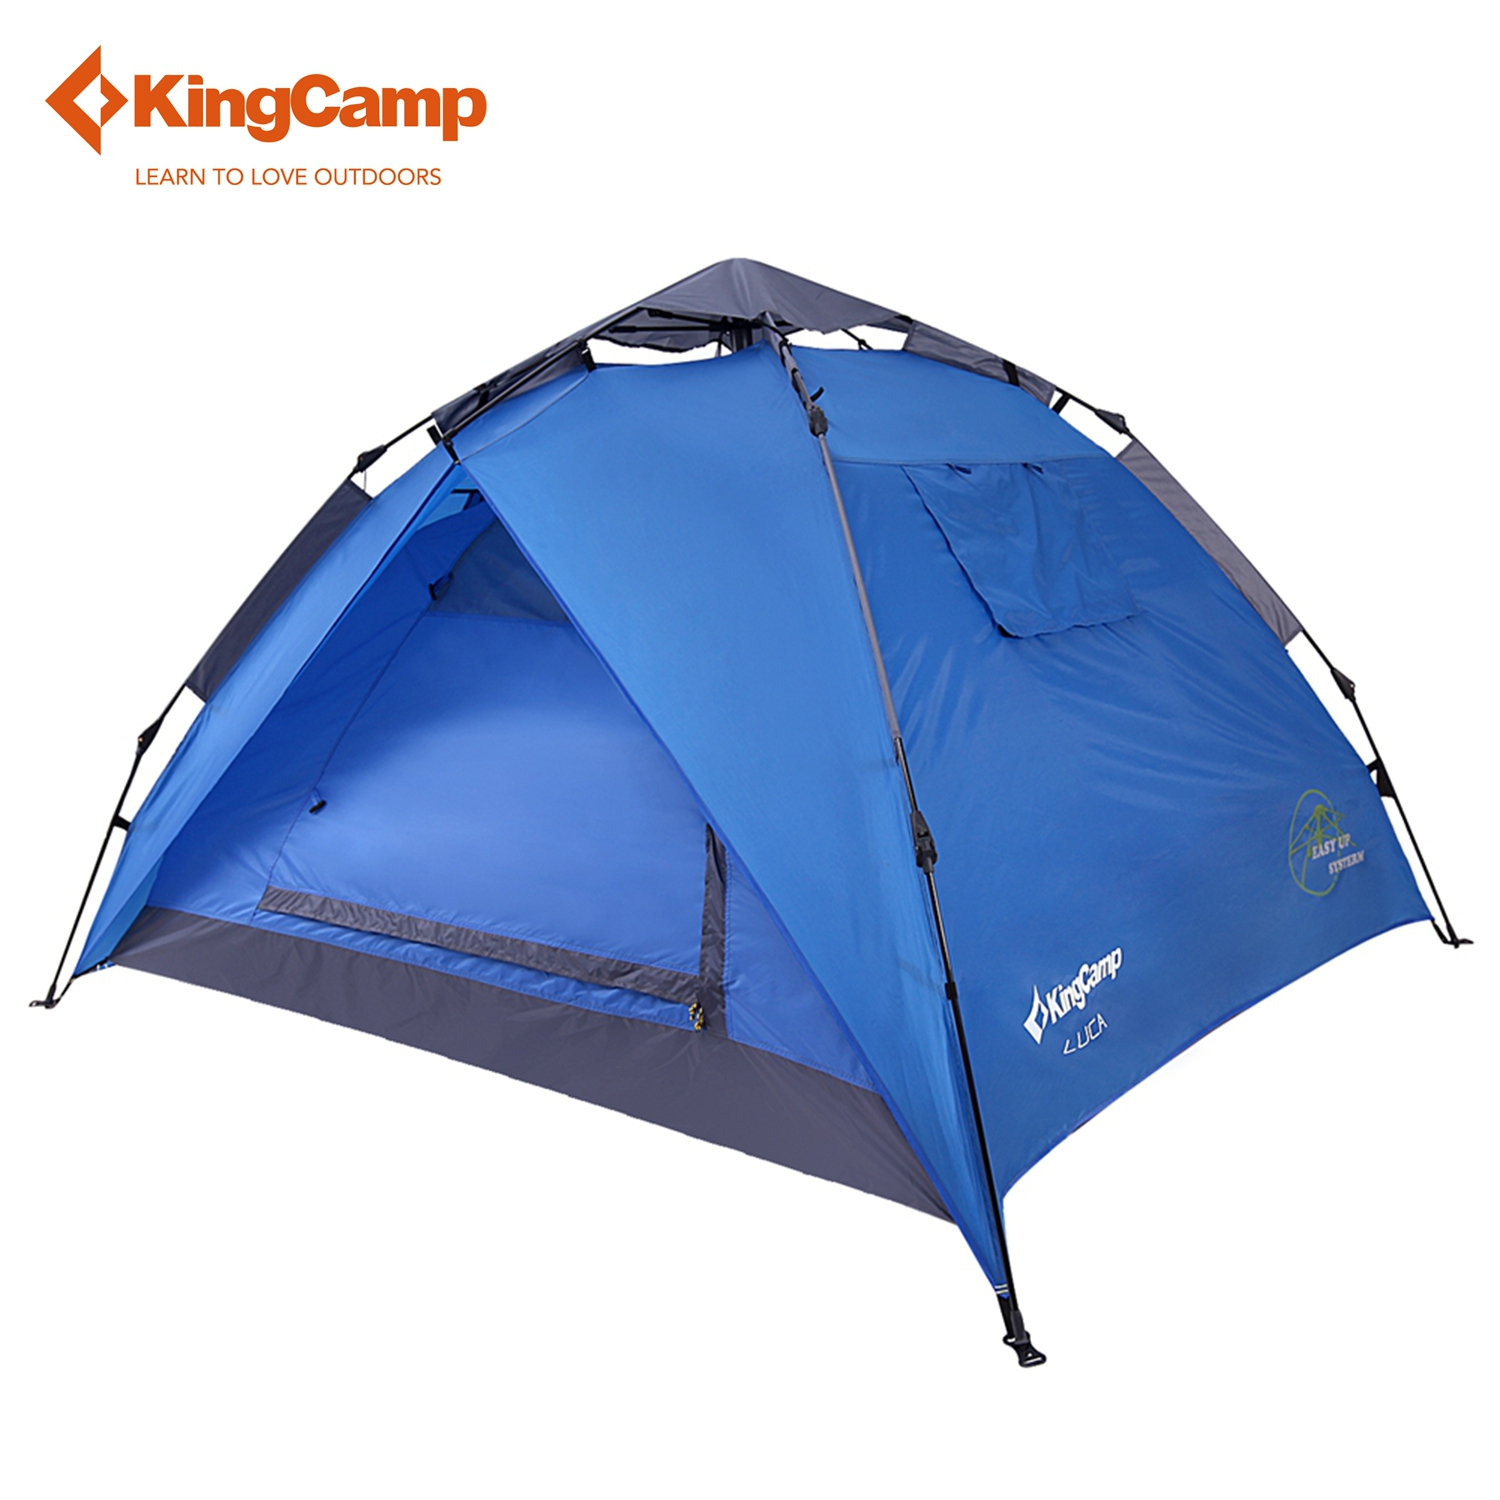 KingCamp Outdoor Tent 3 Person 2 Season Easy up font b Camping b font Tent Portable